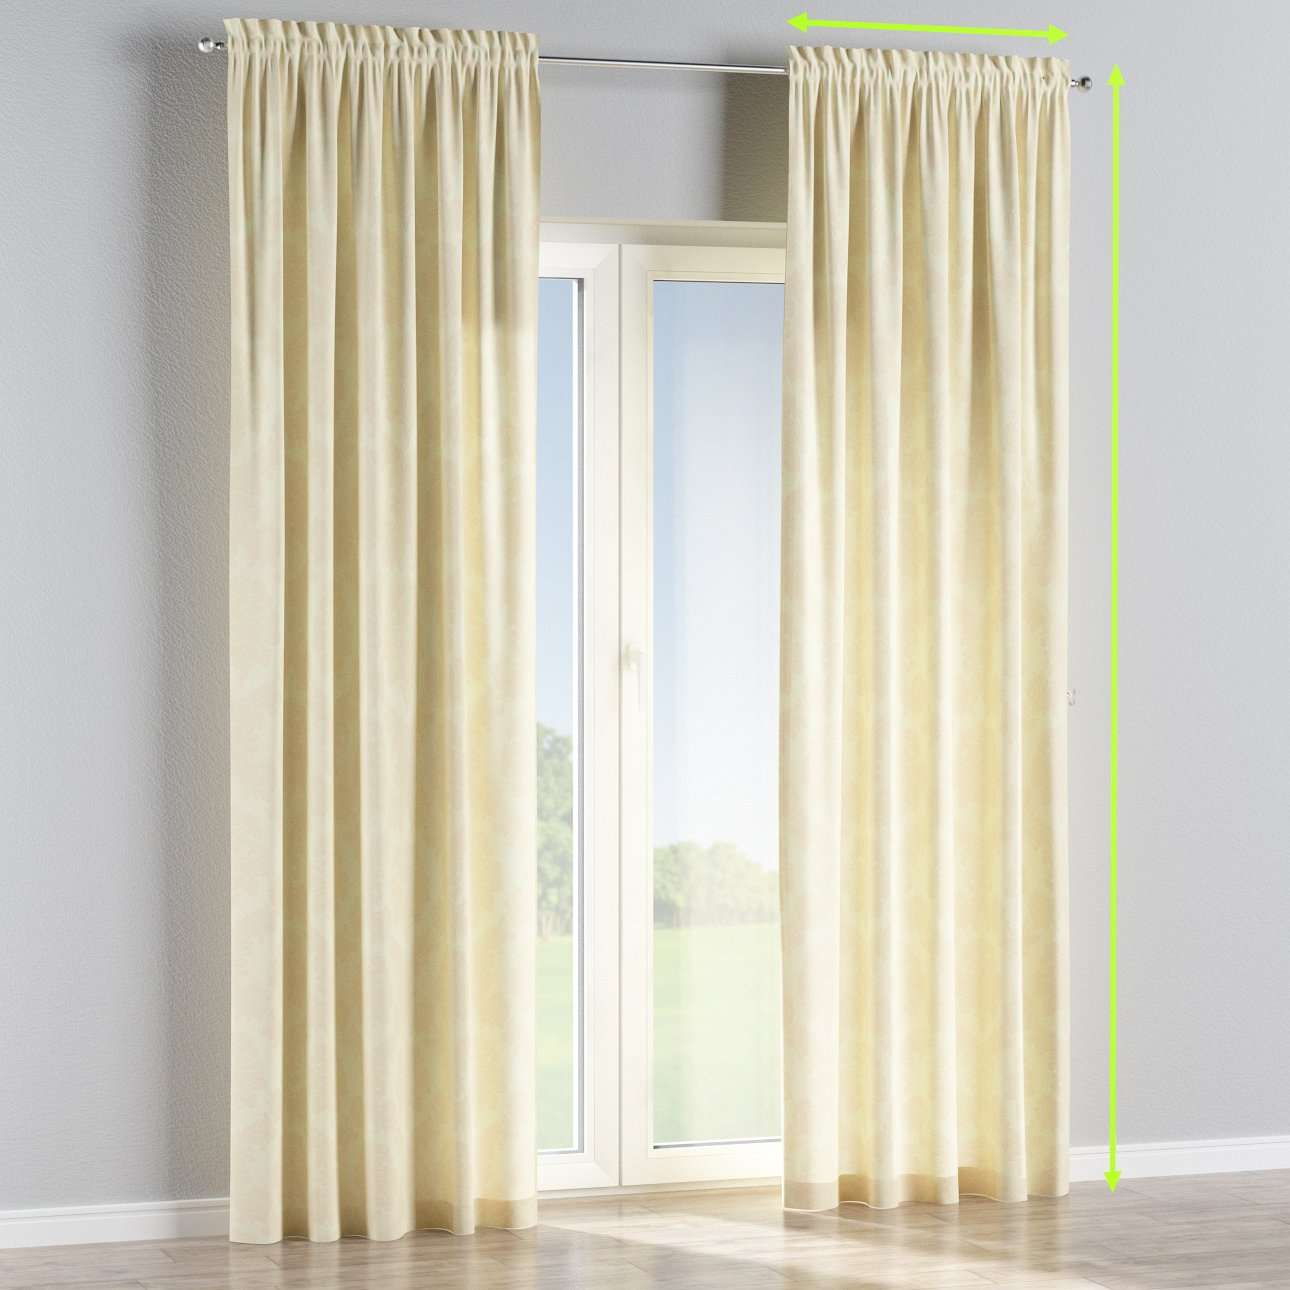 Slot and frill lined curtains in collection Damasco, fabric: 613-01